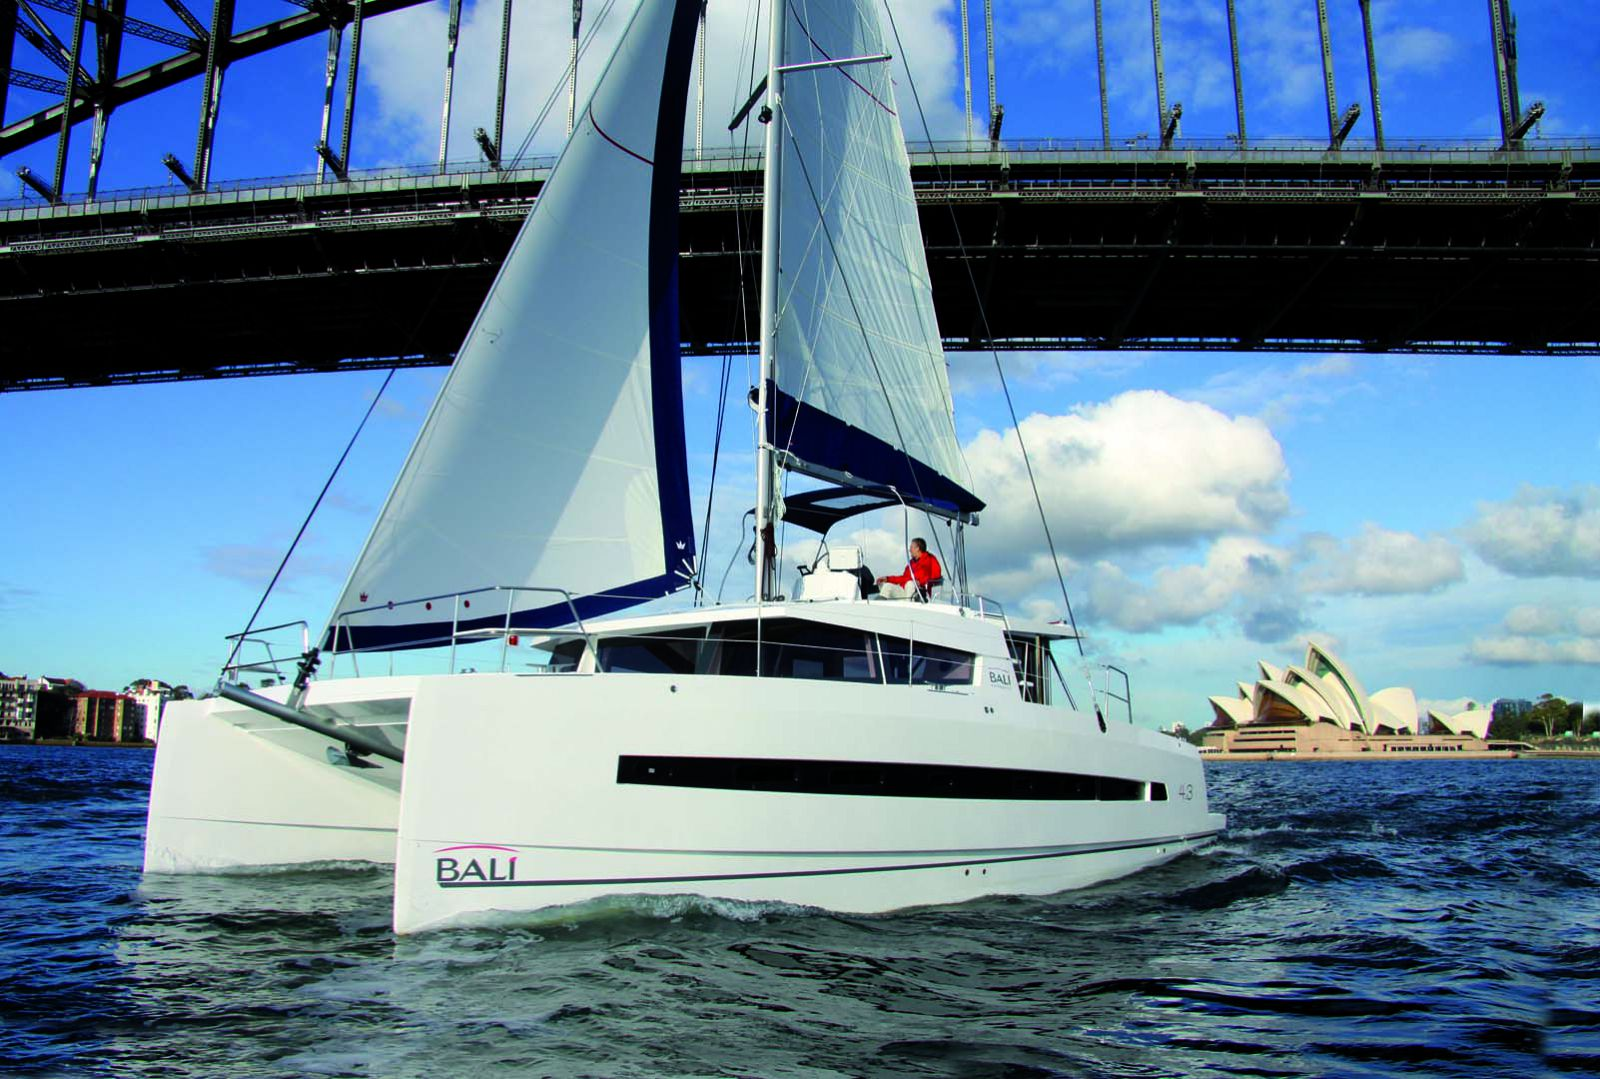 Bali 4.3 Sailing Catamaran For Sale